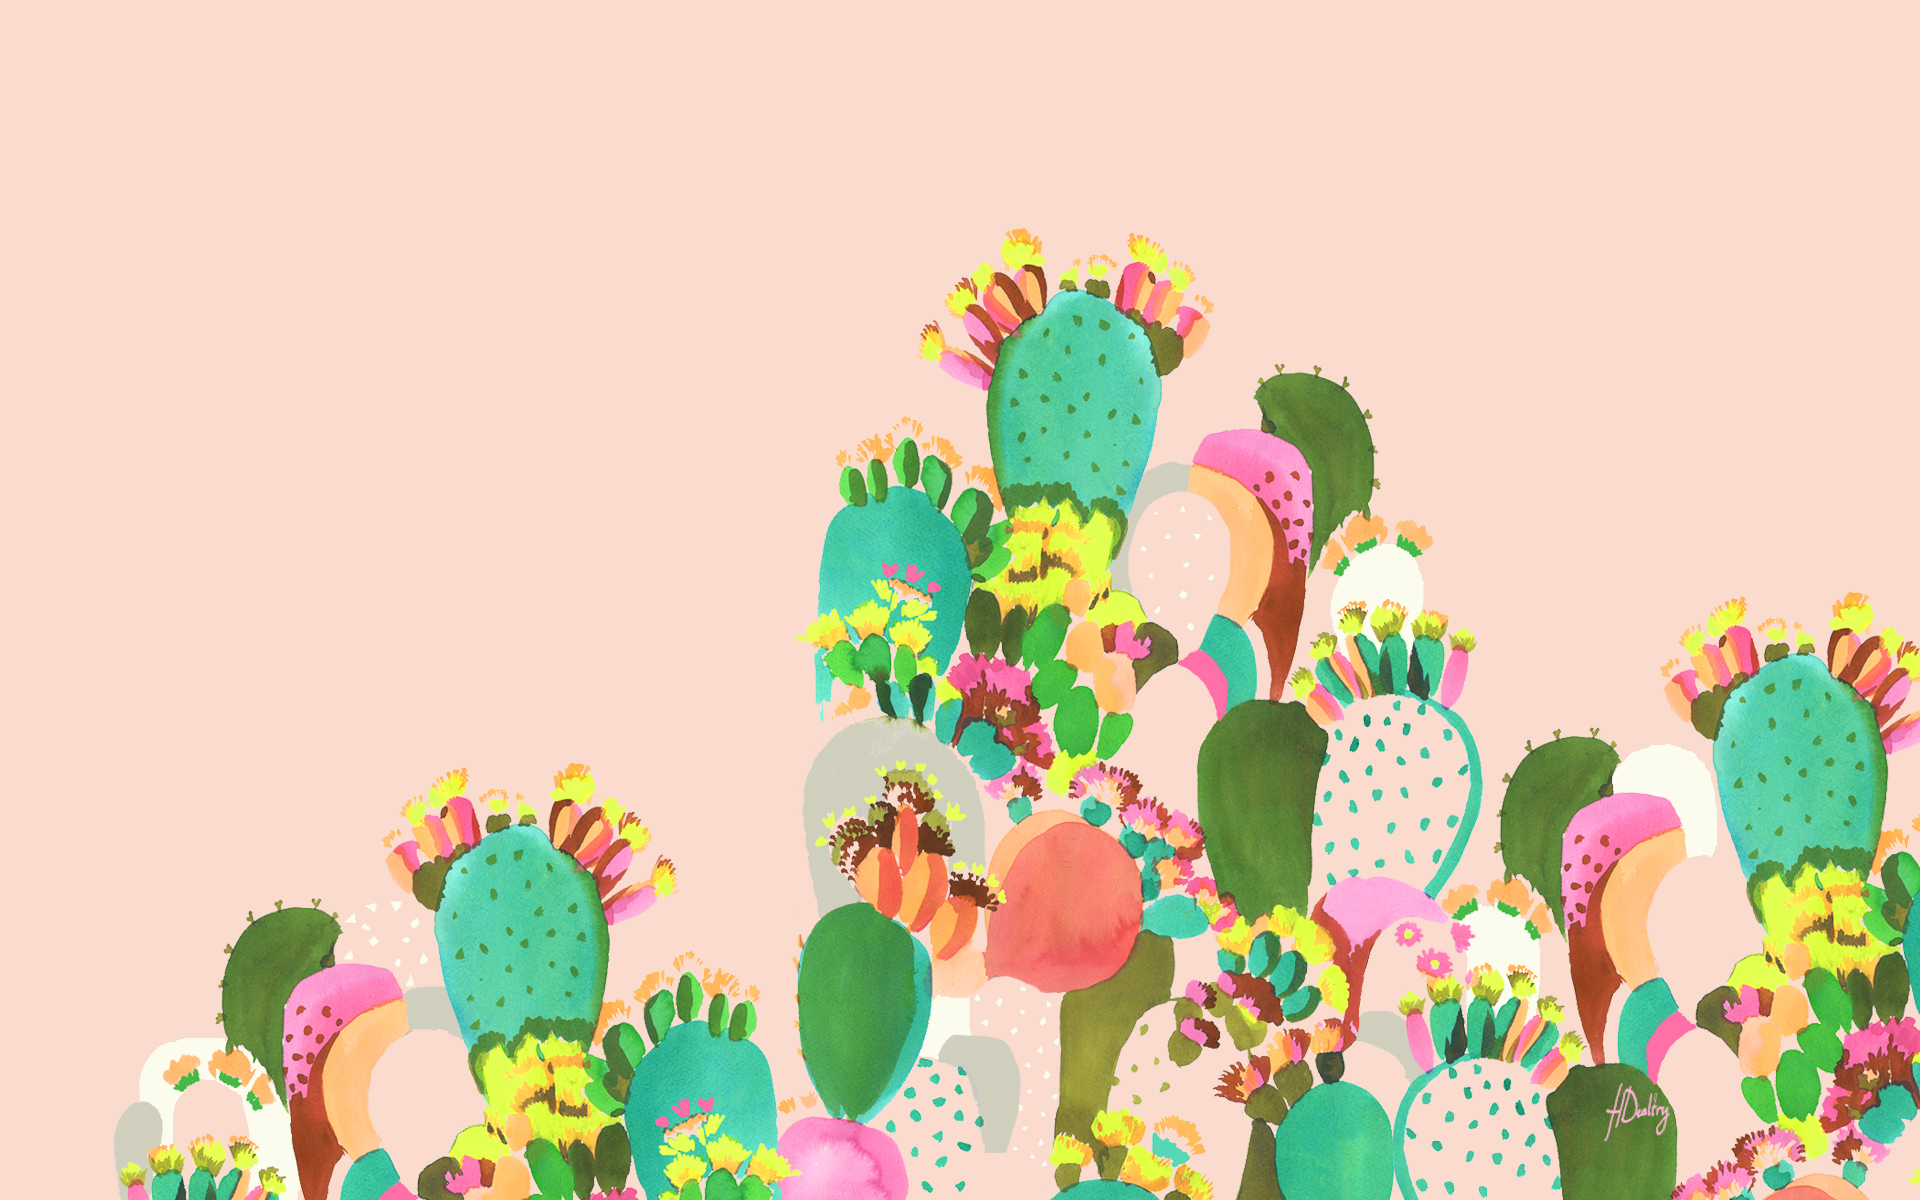 1000+ images about // Desktop Wallpapers on Pinterest   Watercolor